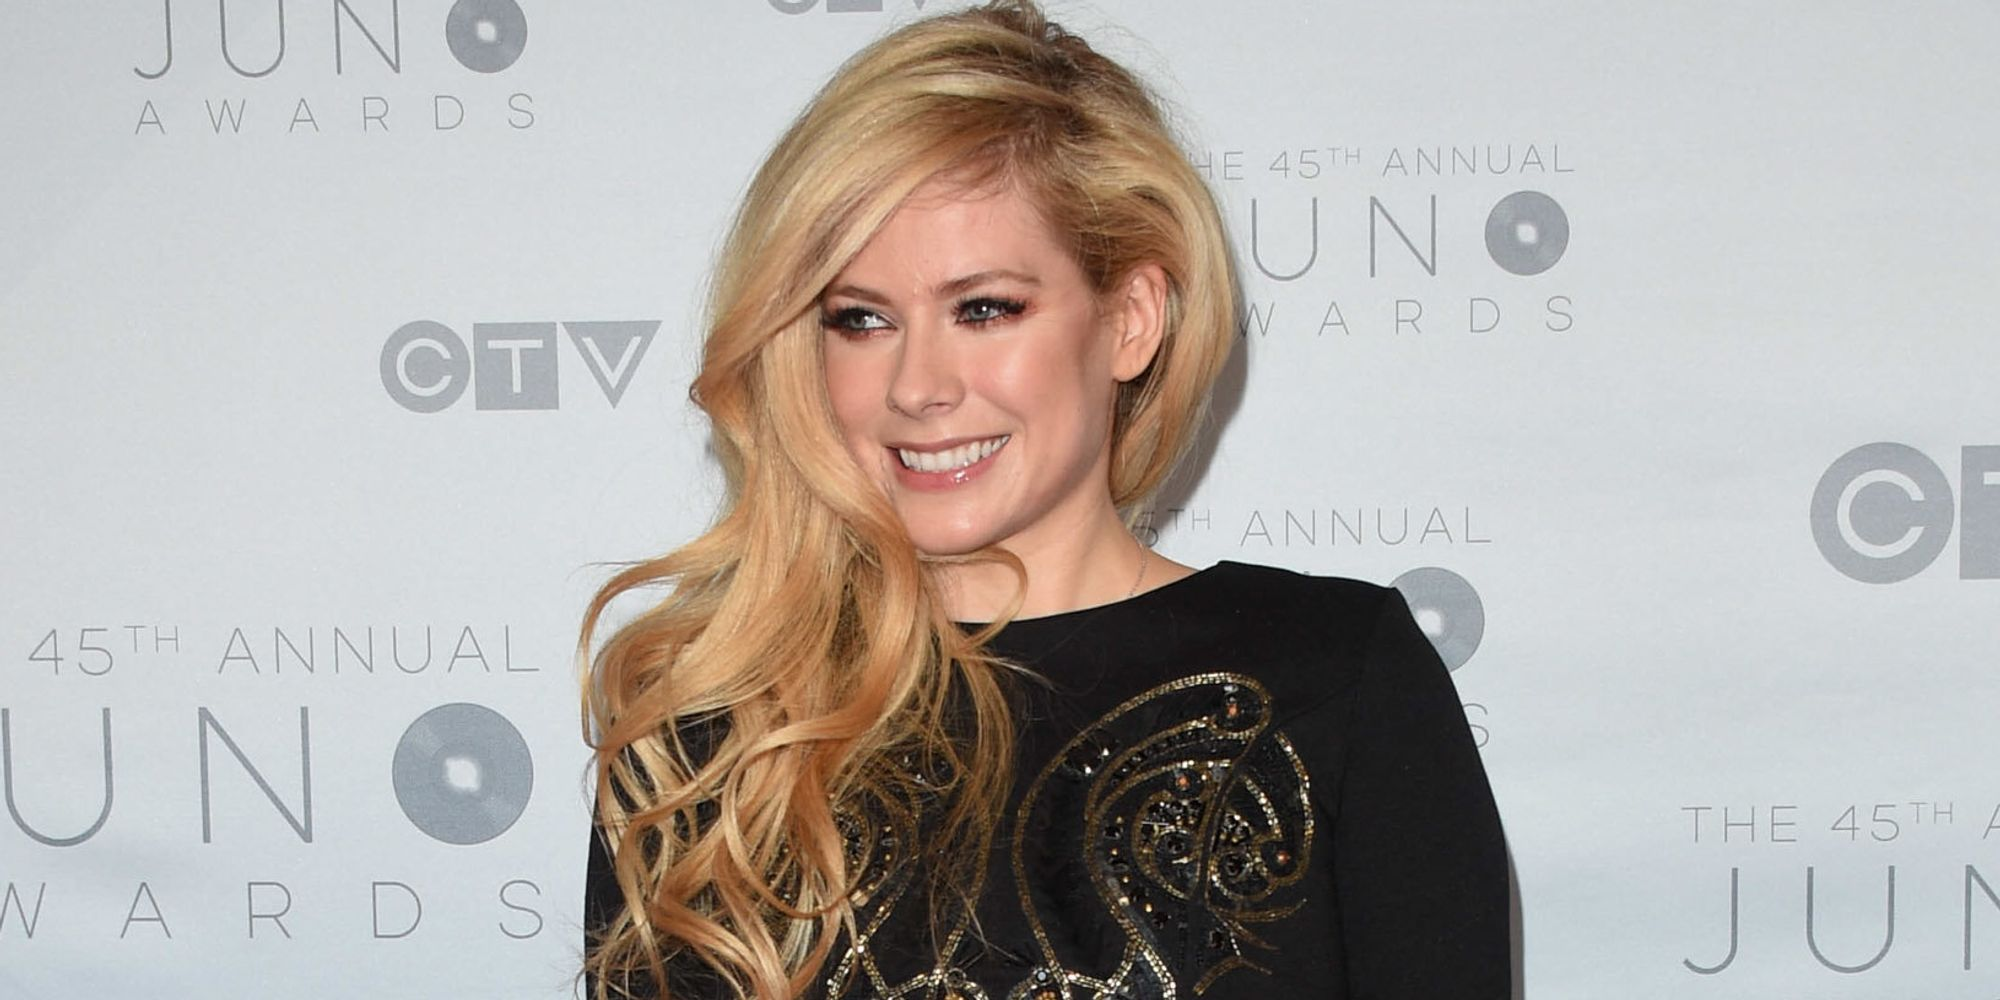 Avril Lavigne Slams Mark Zuckerberg For 'Bullying' Nickelback